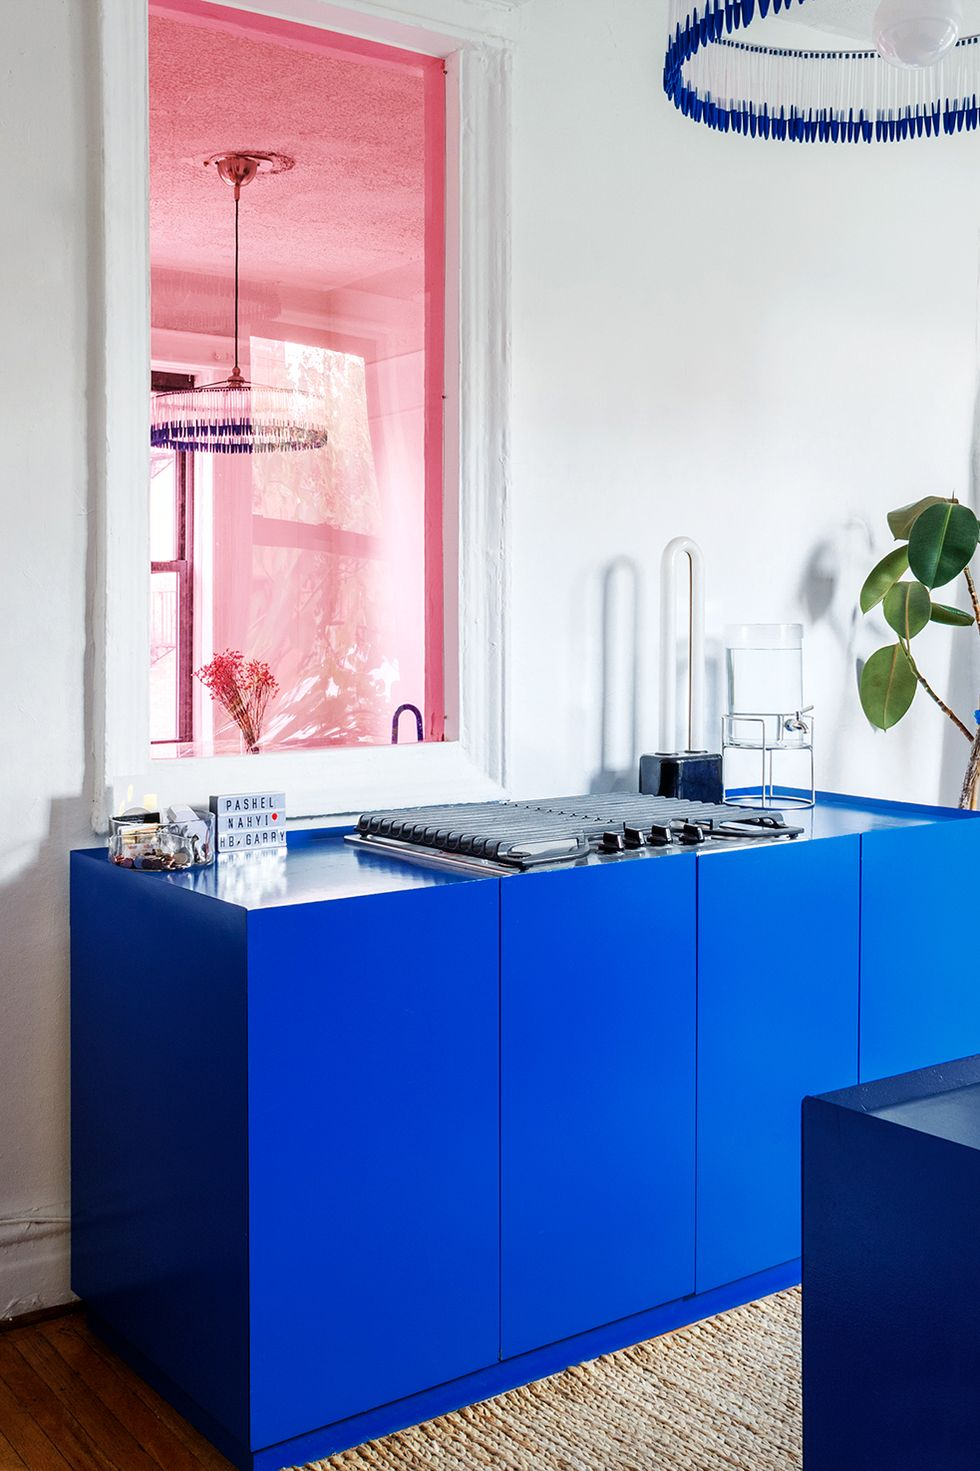 MDF countertop in blue in white kitchen with decor